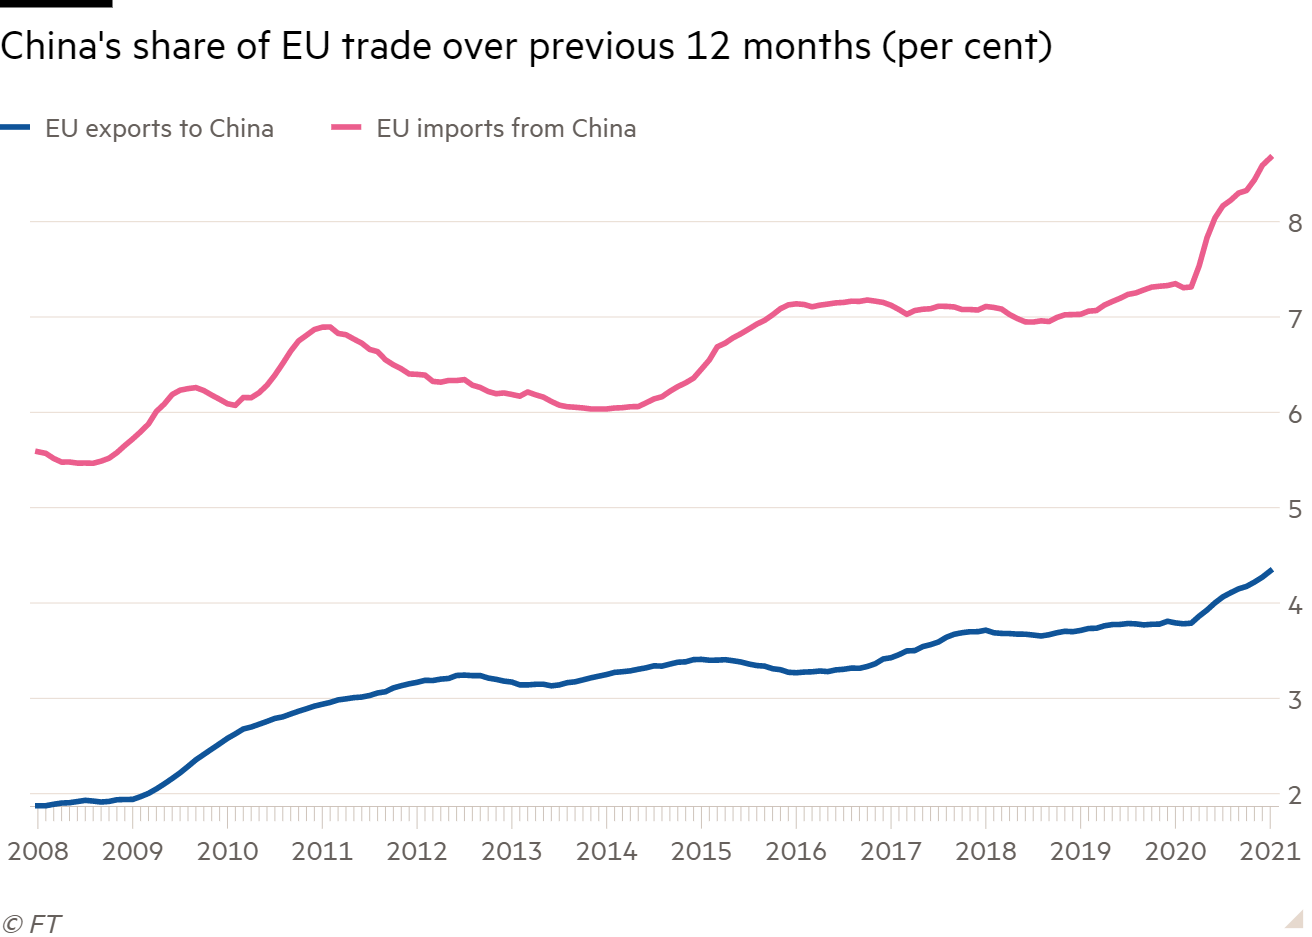 Line chart showing China's share of EU trade over previous 12 months (per cent)